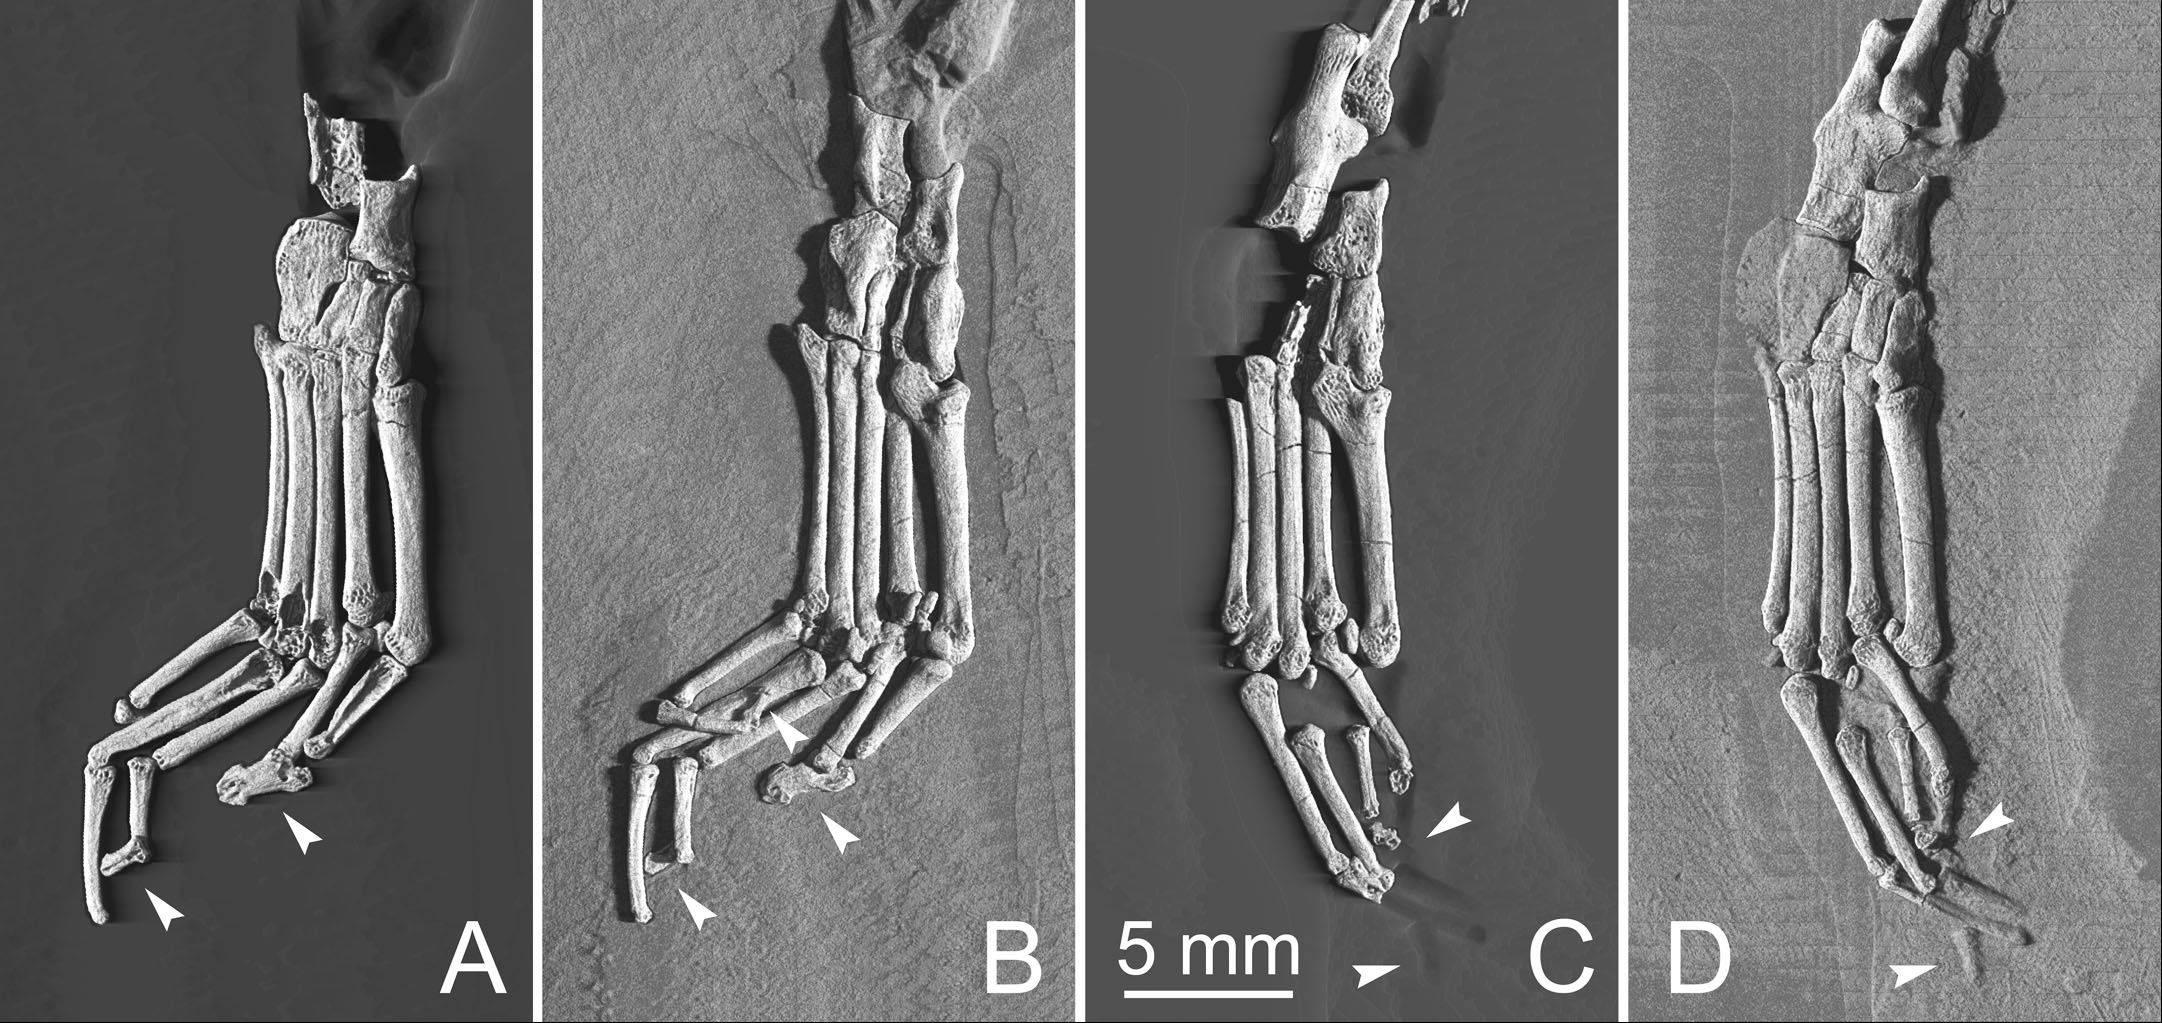 Several views of the foot region of Archicebus achilles. Northern Illinois University professor Dan Gebo, of Elgin, was part of the international team that discovered the tiny, 55 million-year-old primate.